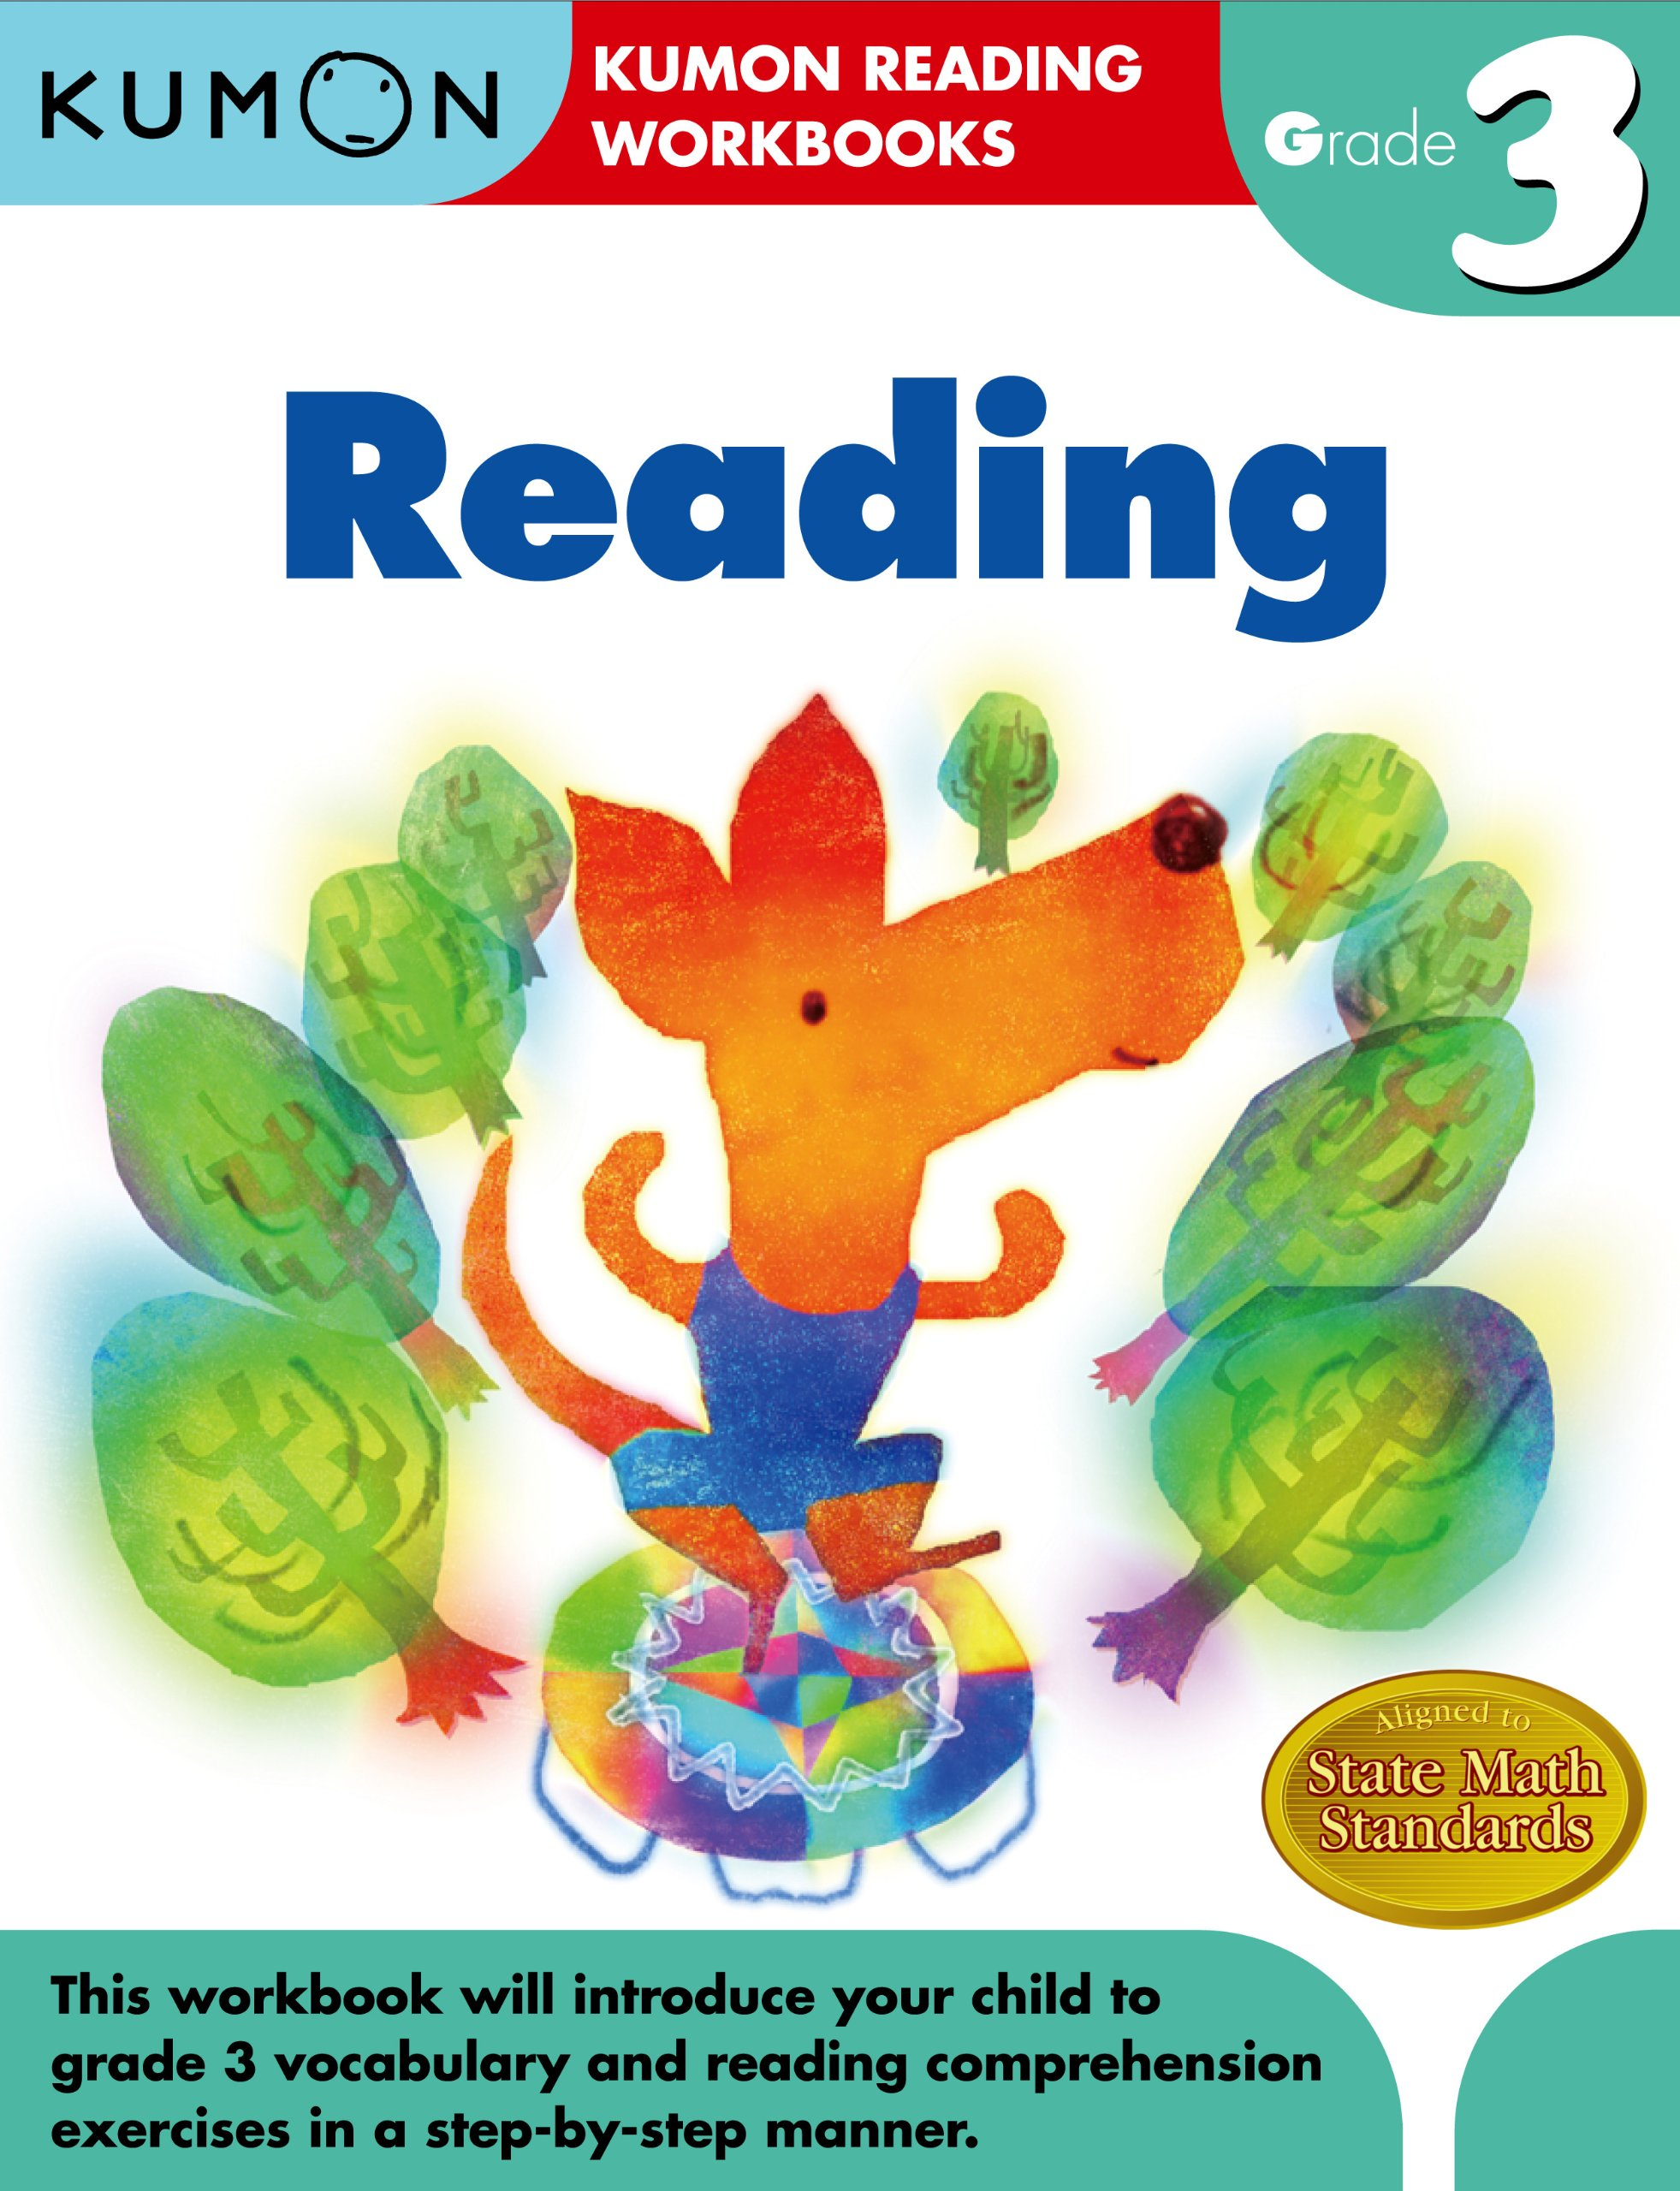 Printables Sample Reading Materials For Grade 3 amazon com grade 3 reading kumon workbooks 9781934968772 publishing books